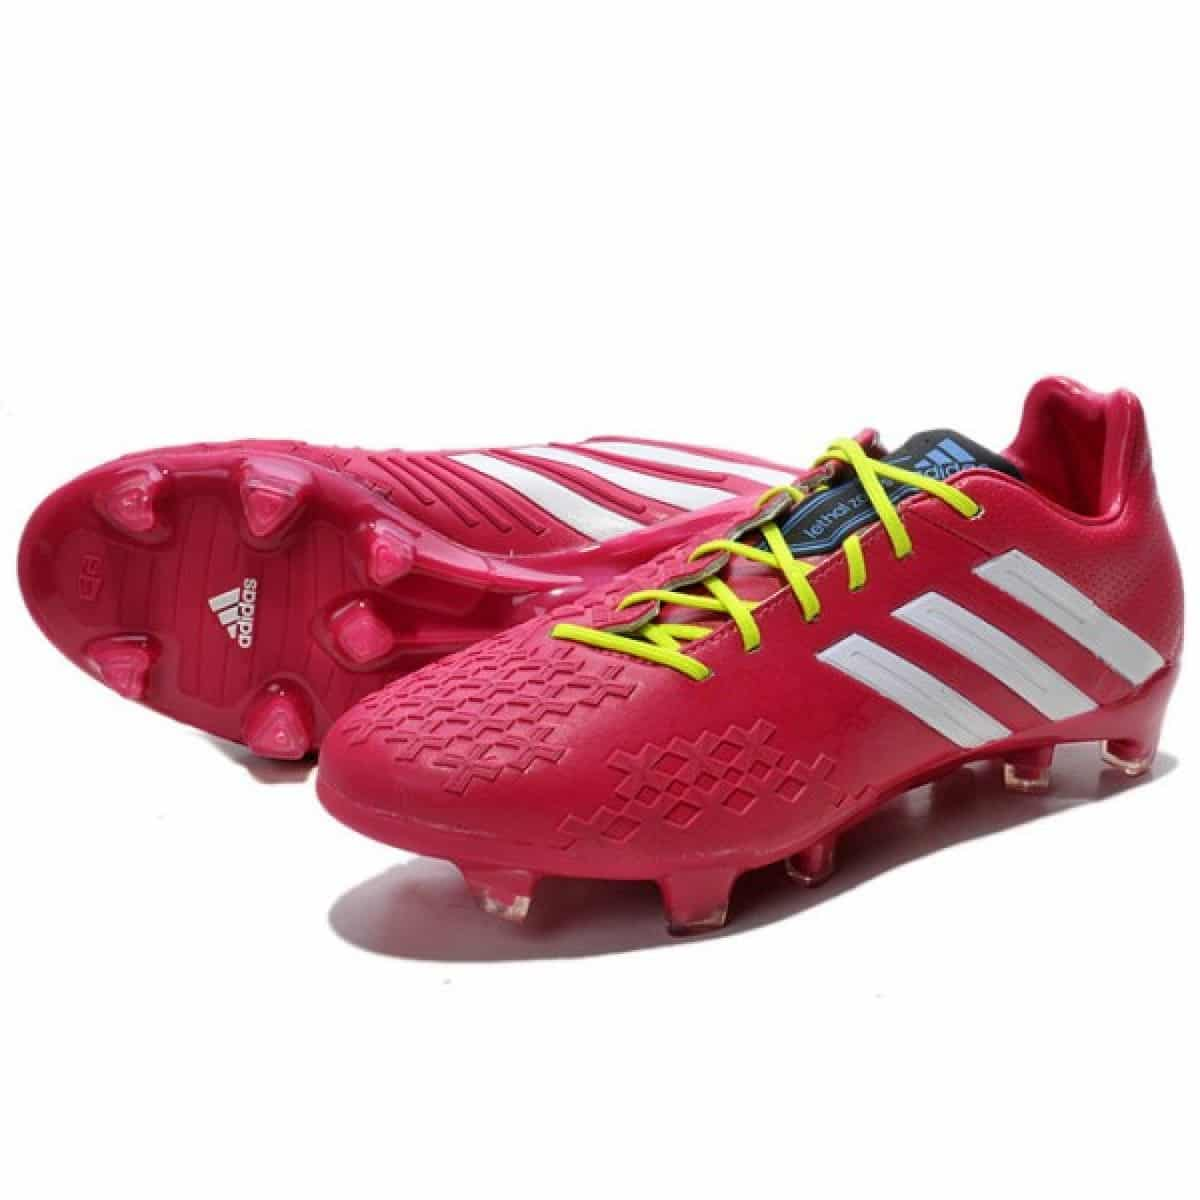 chaussures-football-samba-pack-2014-adidas-predator-lz-trx-rose